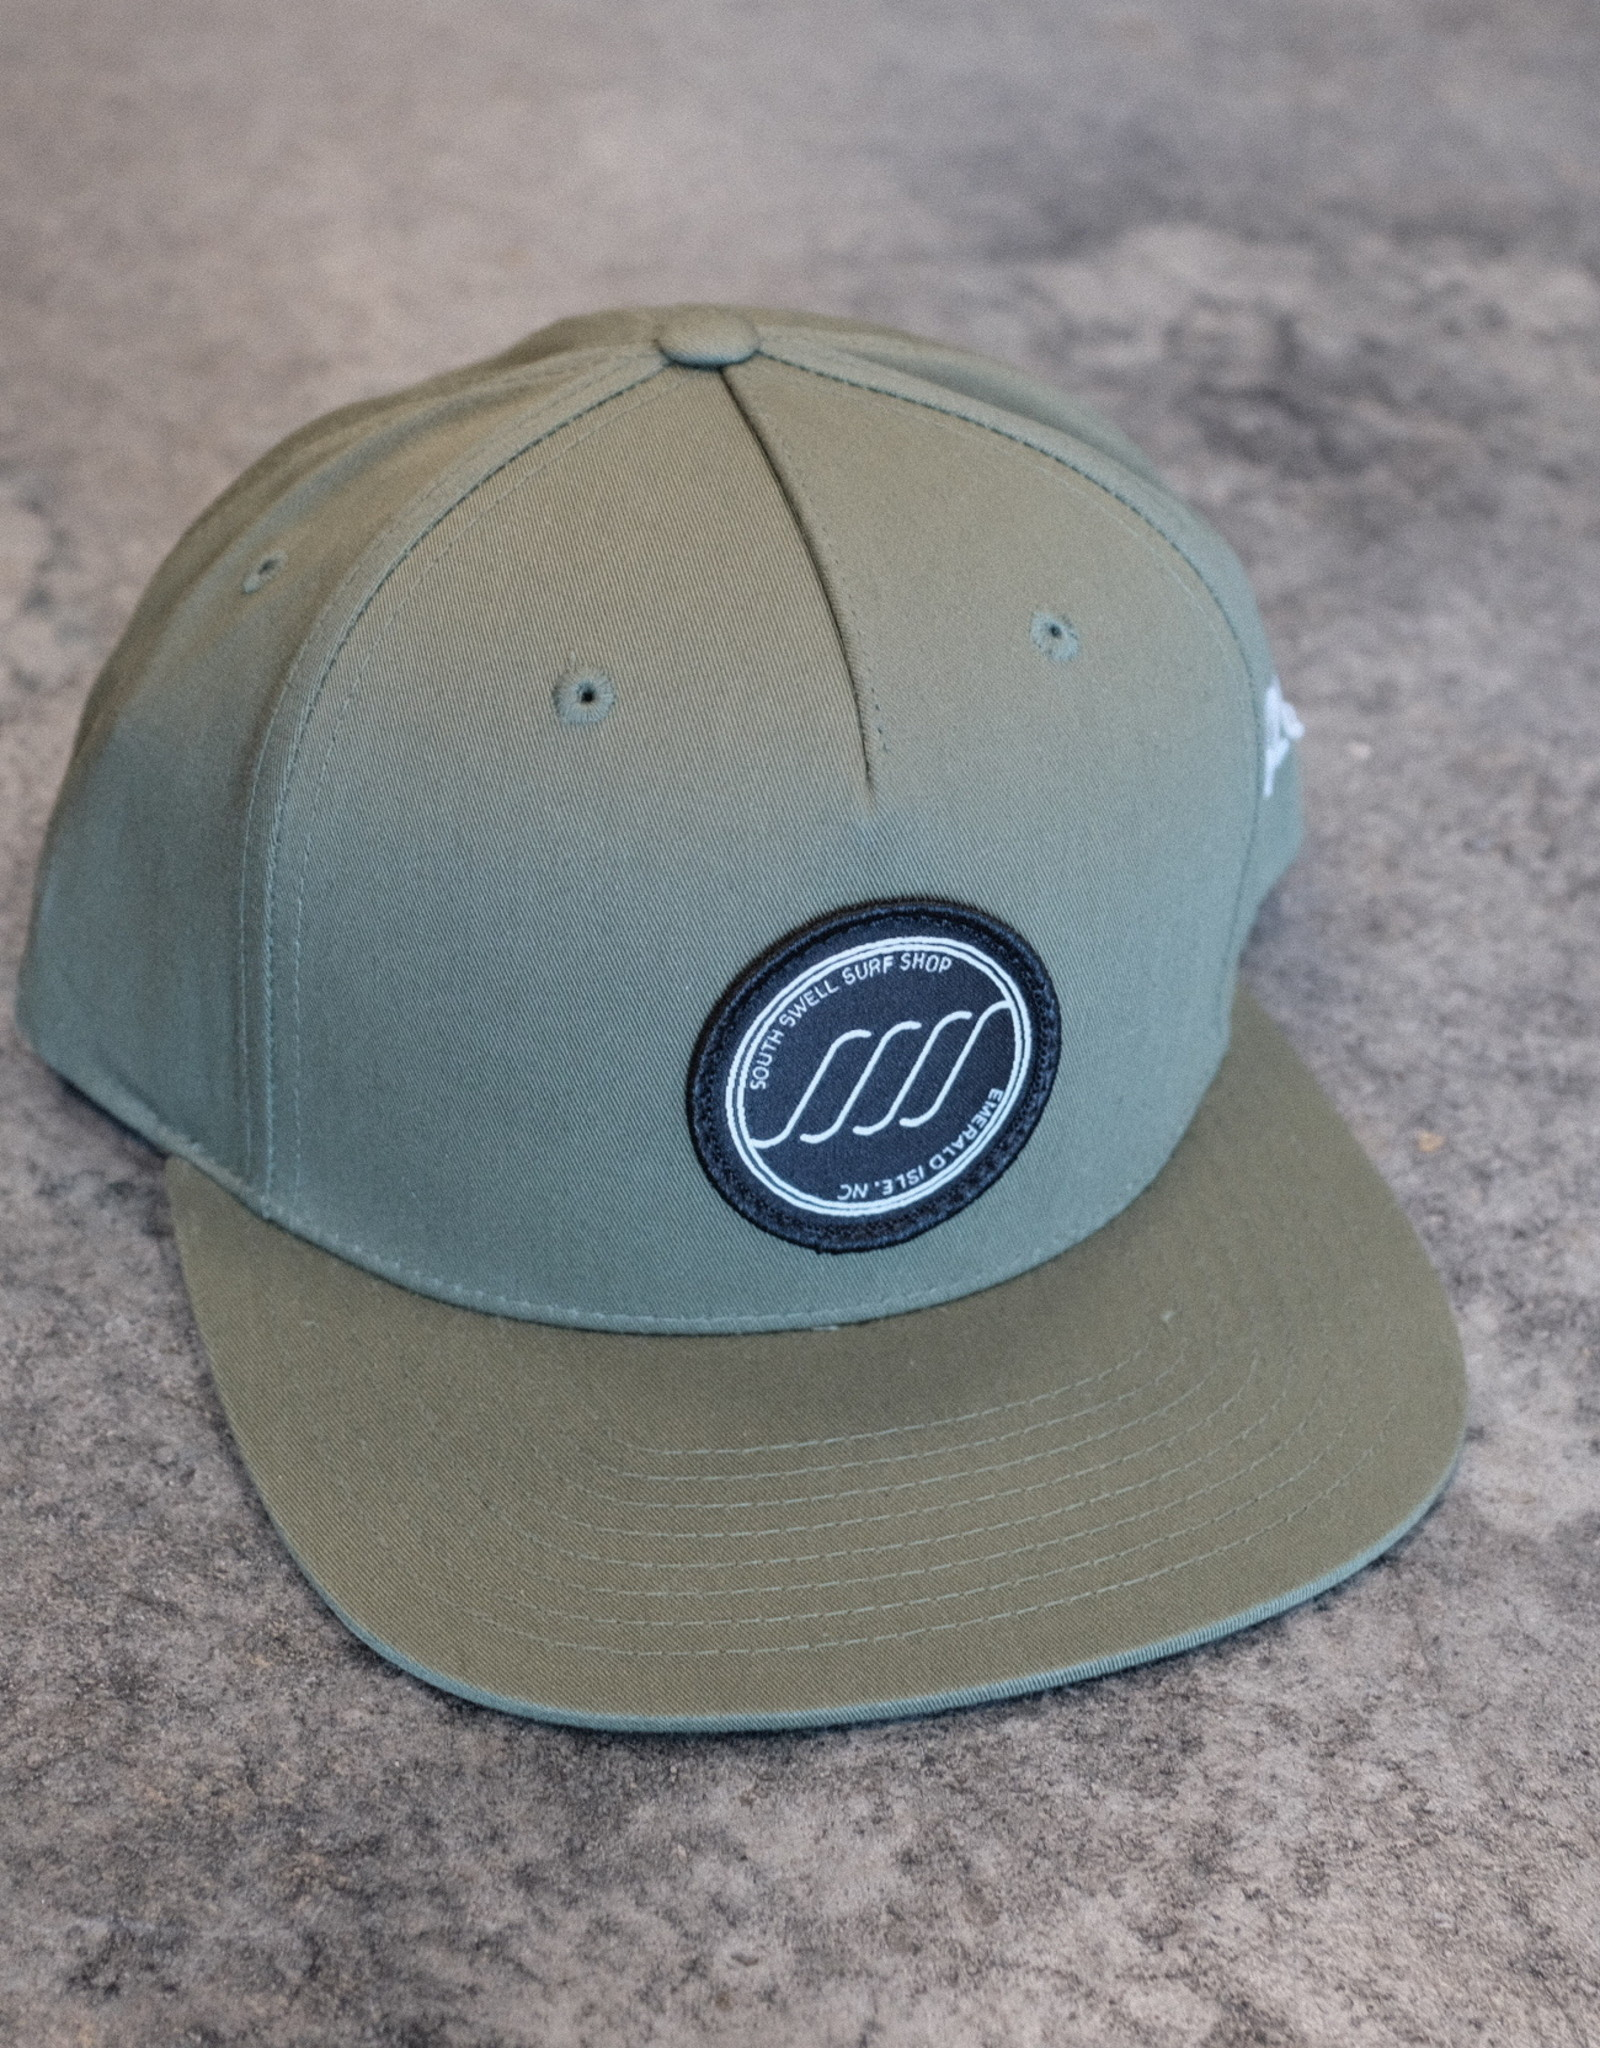 South Swell Surf Shop SSSS Circle Patch Flat Bill Hat